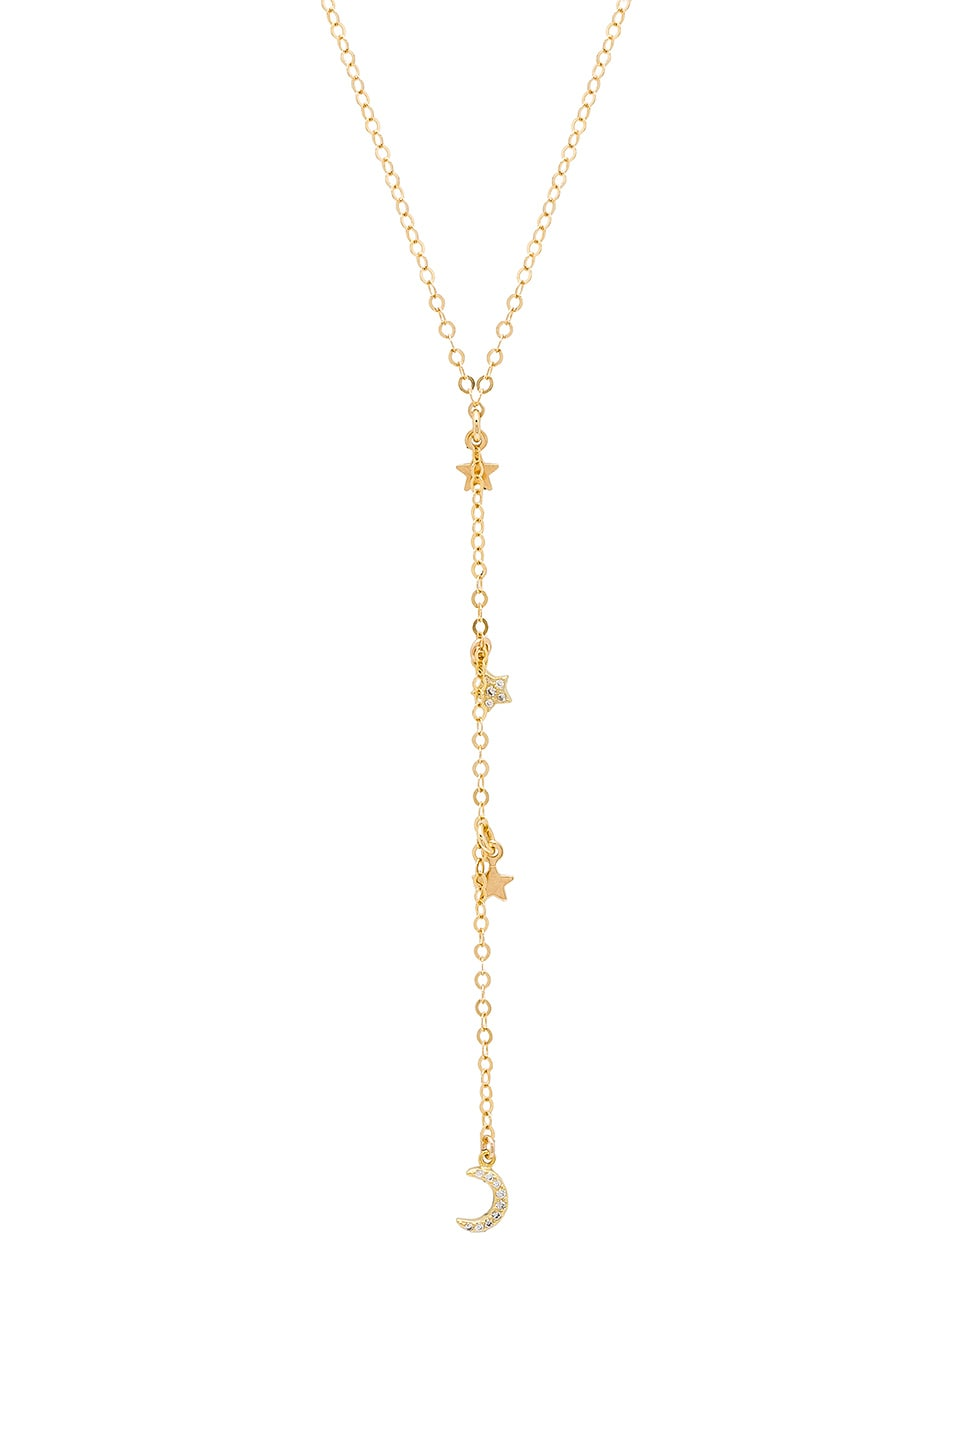 EIGHT BY GJENMI JEWELRY X Revolve Star And Moon Choker Lariat in Metallic Gold